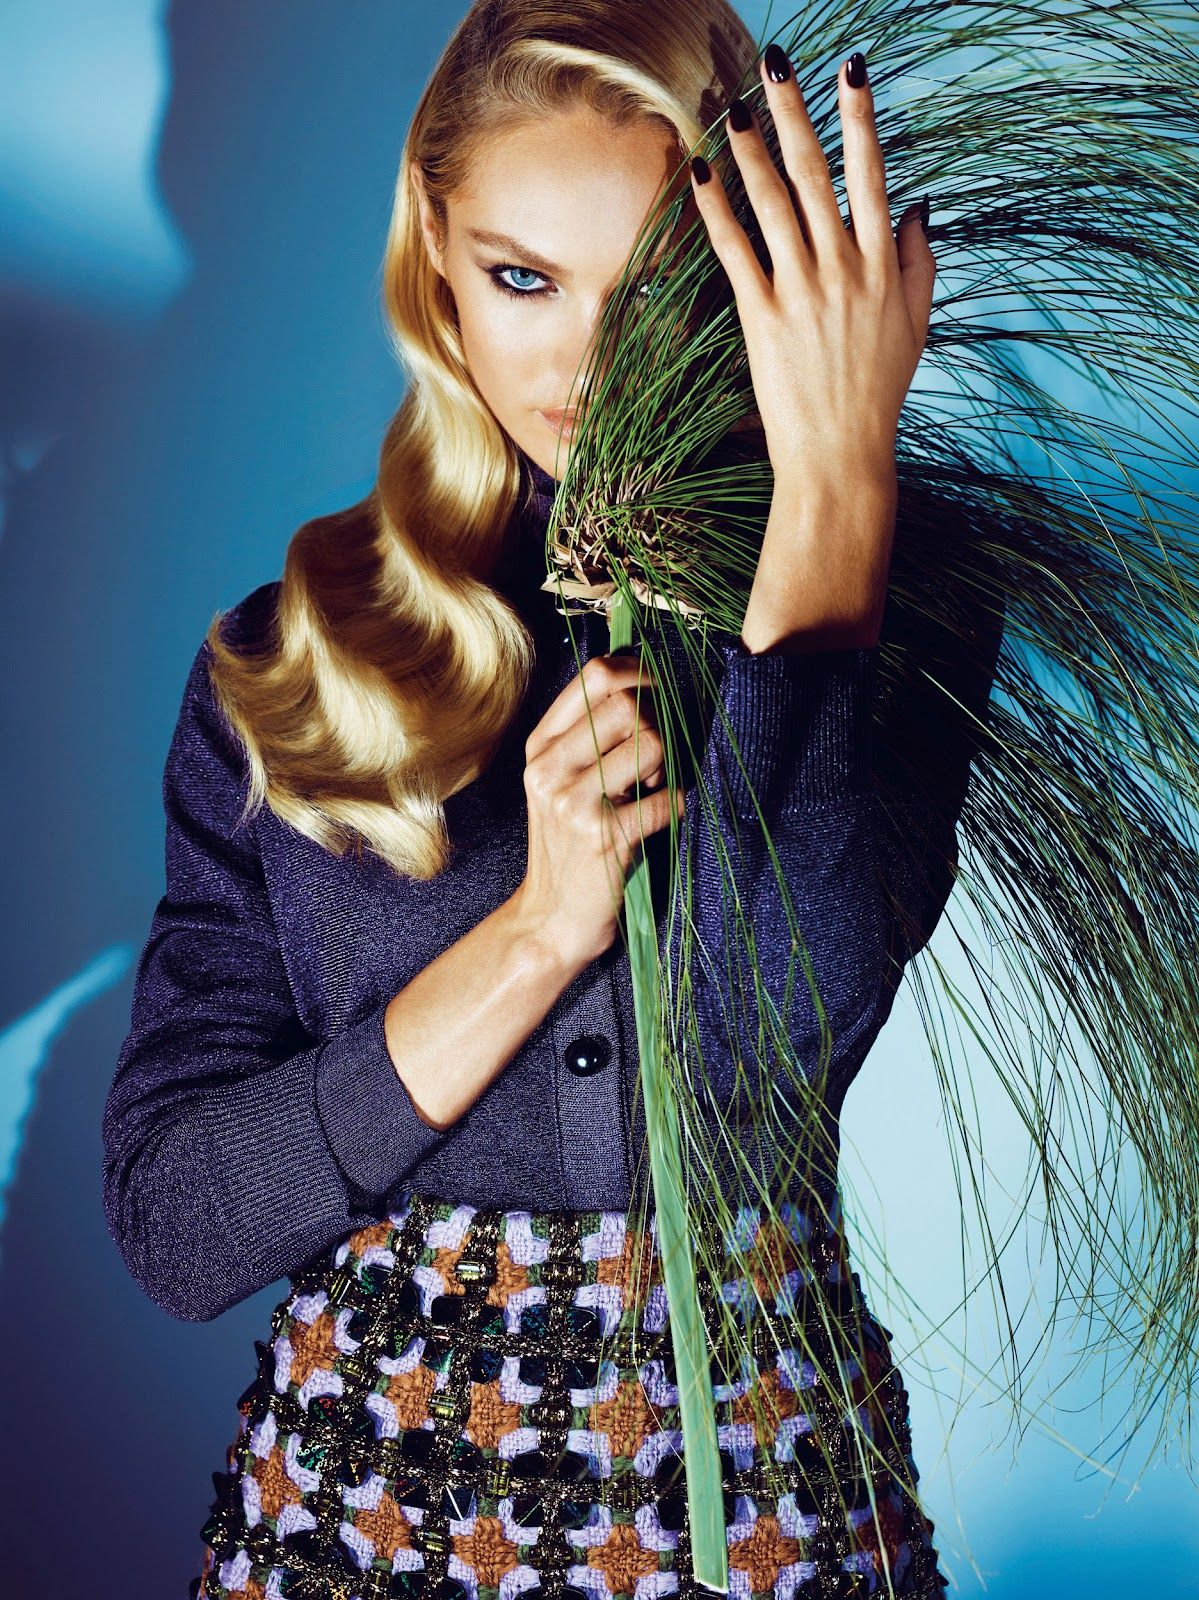 visual optimism; daily fashion fix.: angel in the outfield: candice swanepoel by alexi lubomirski for numero tokyo #59 september 2012